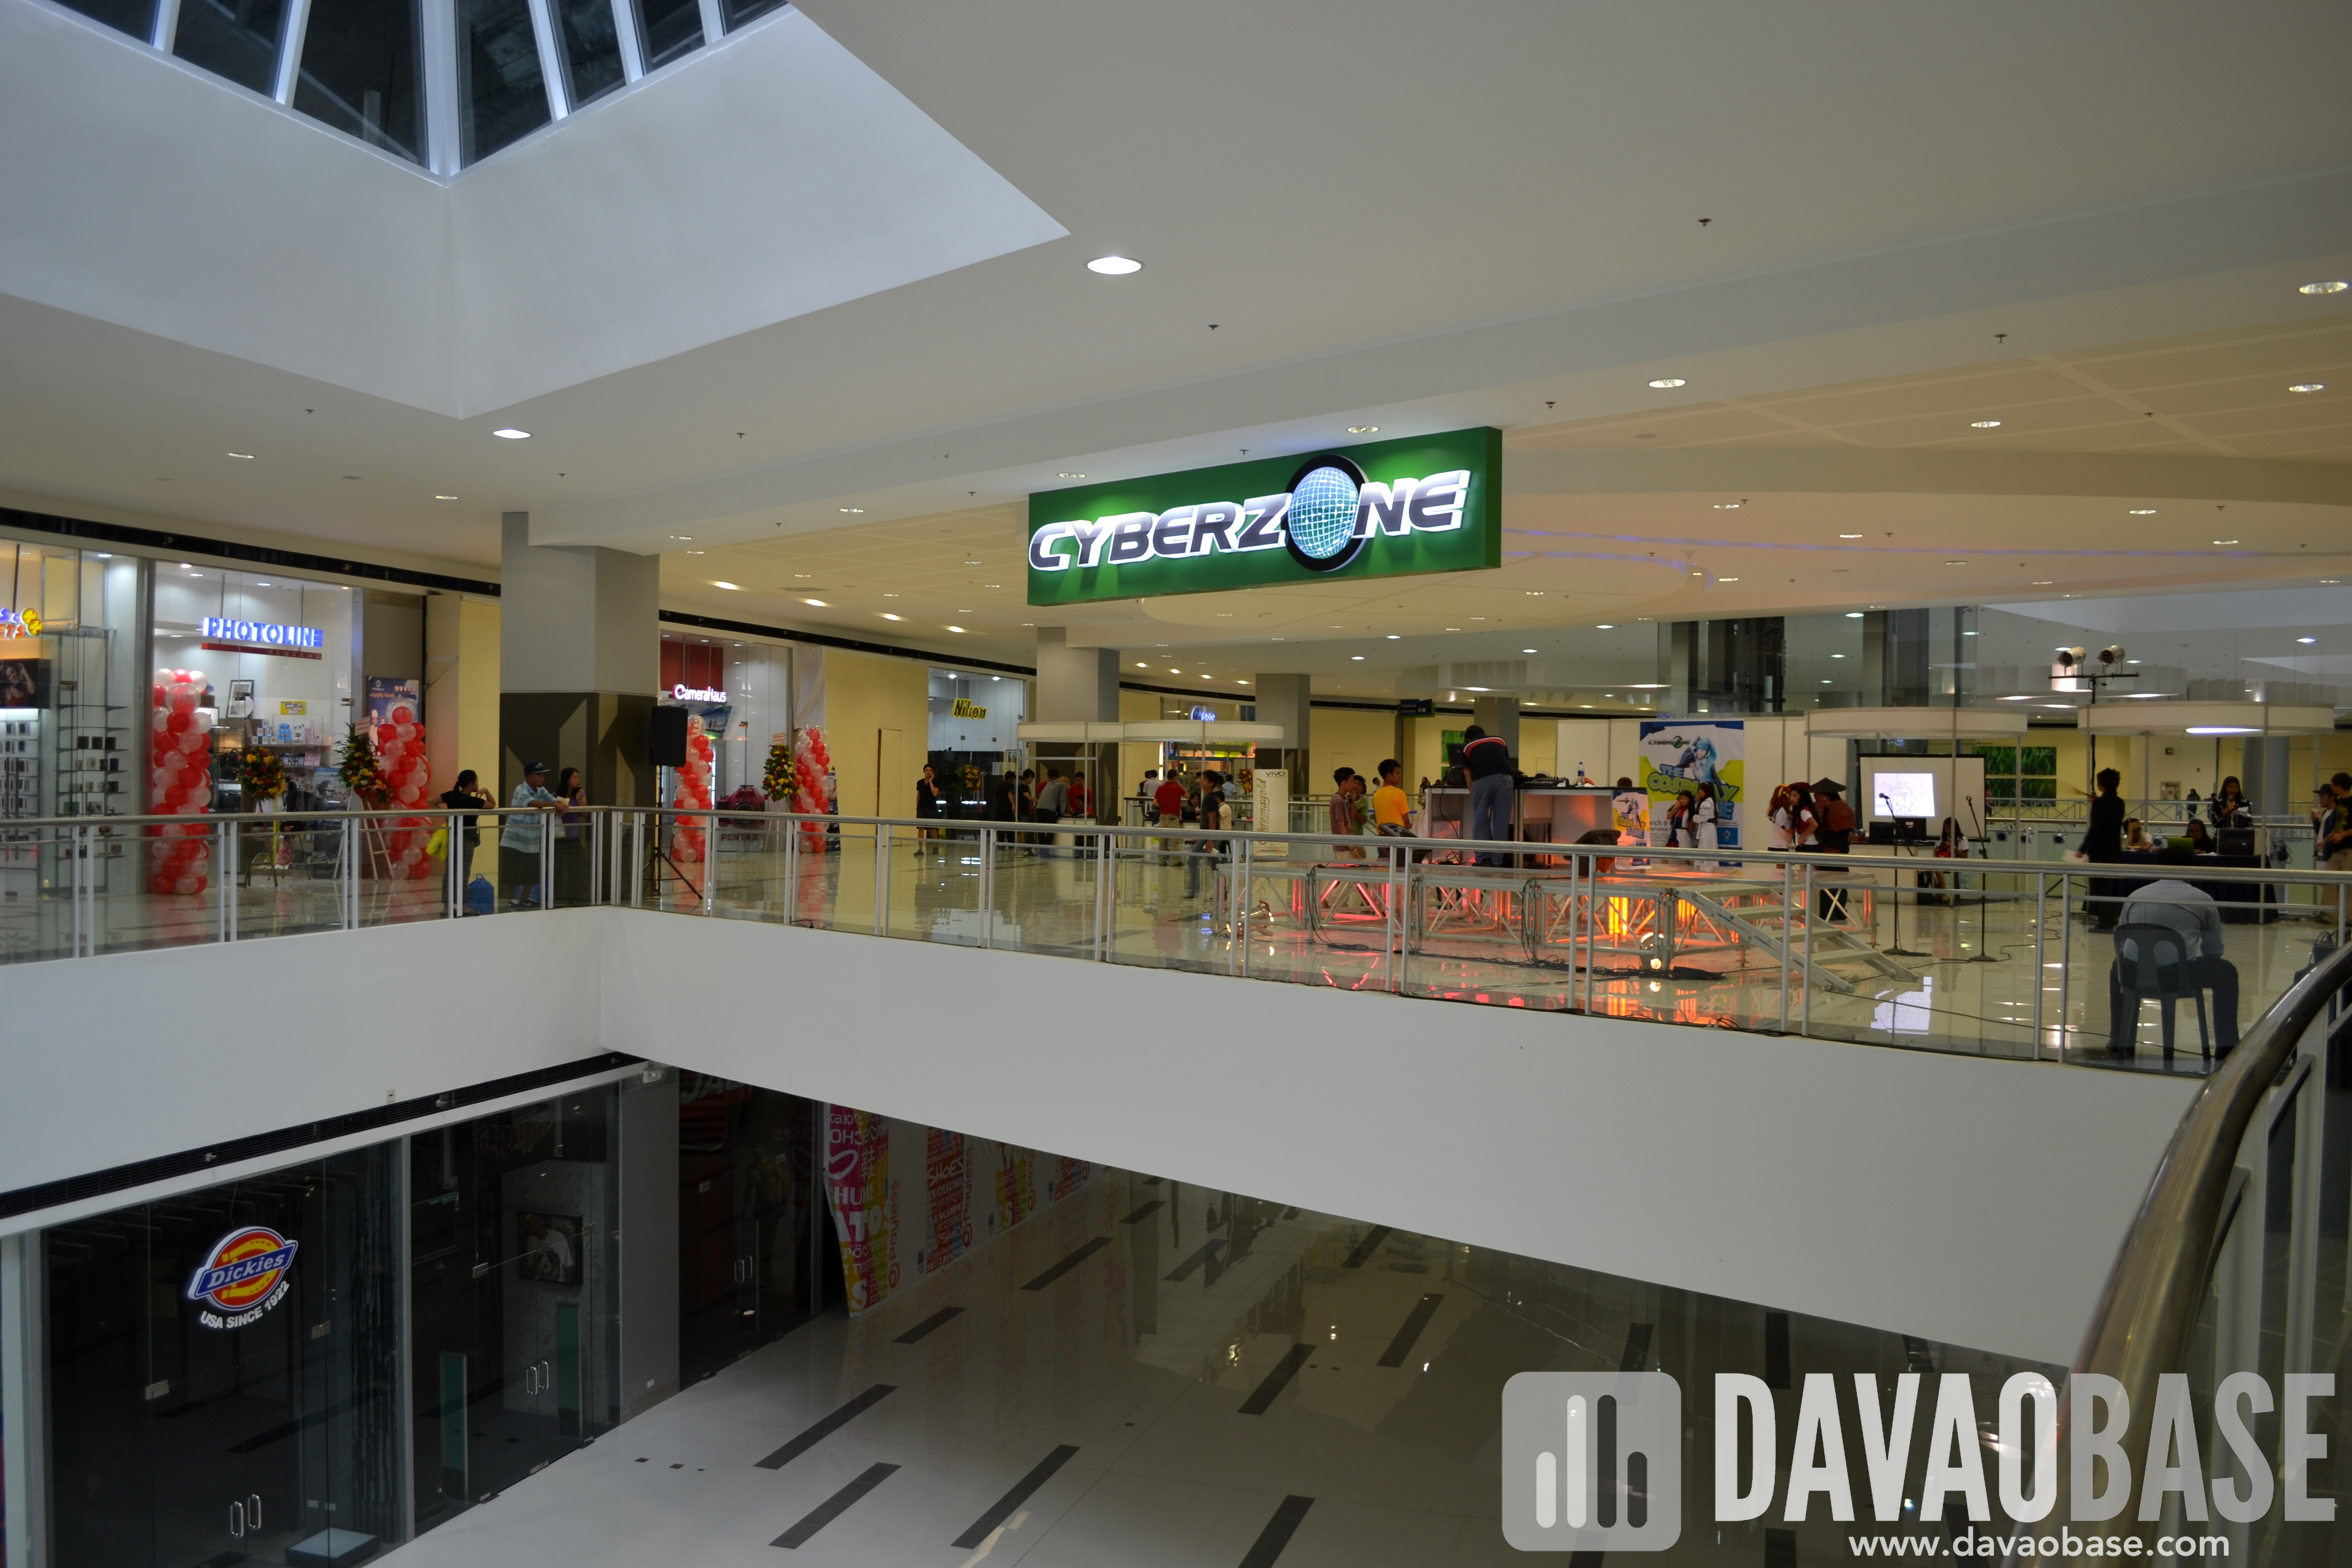 Cyberzone at the 2nd Floor of The Annex at SM City Davao